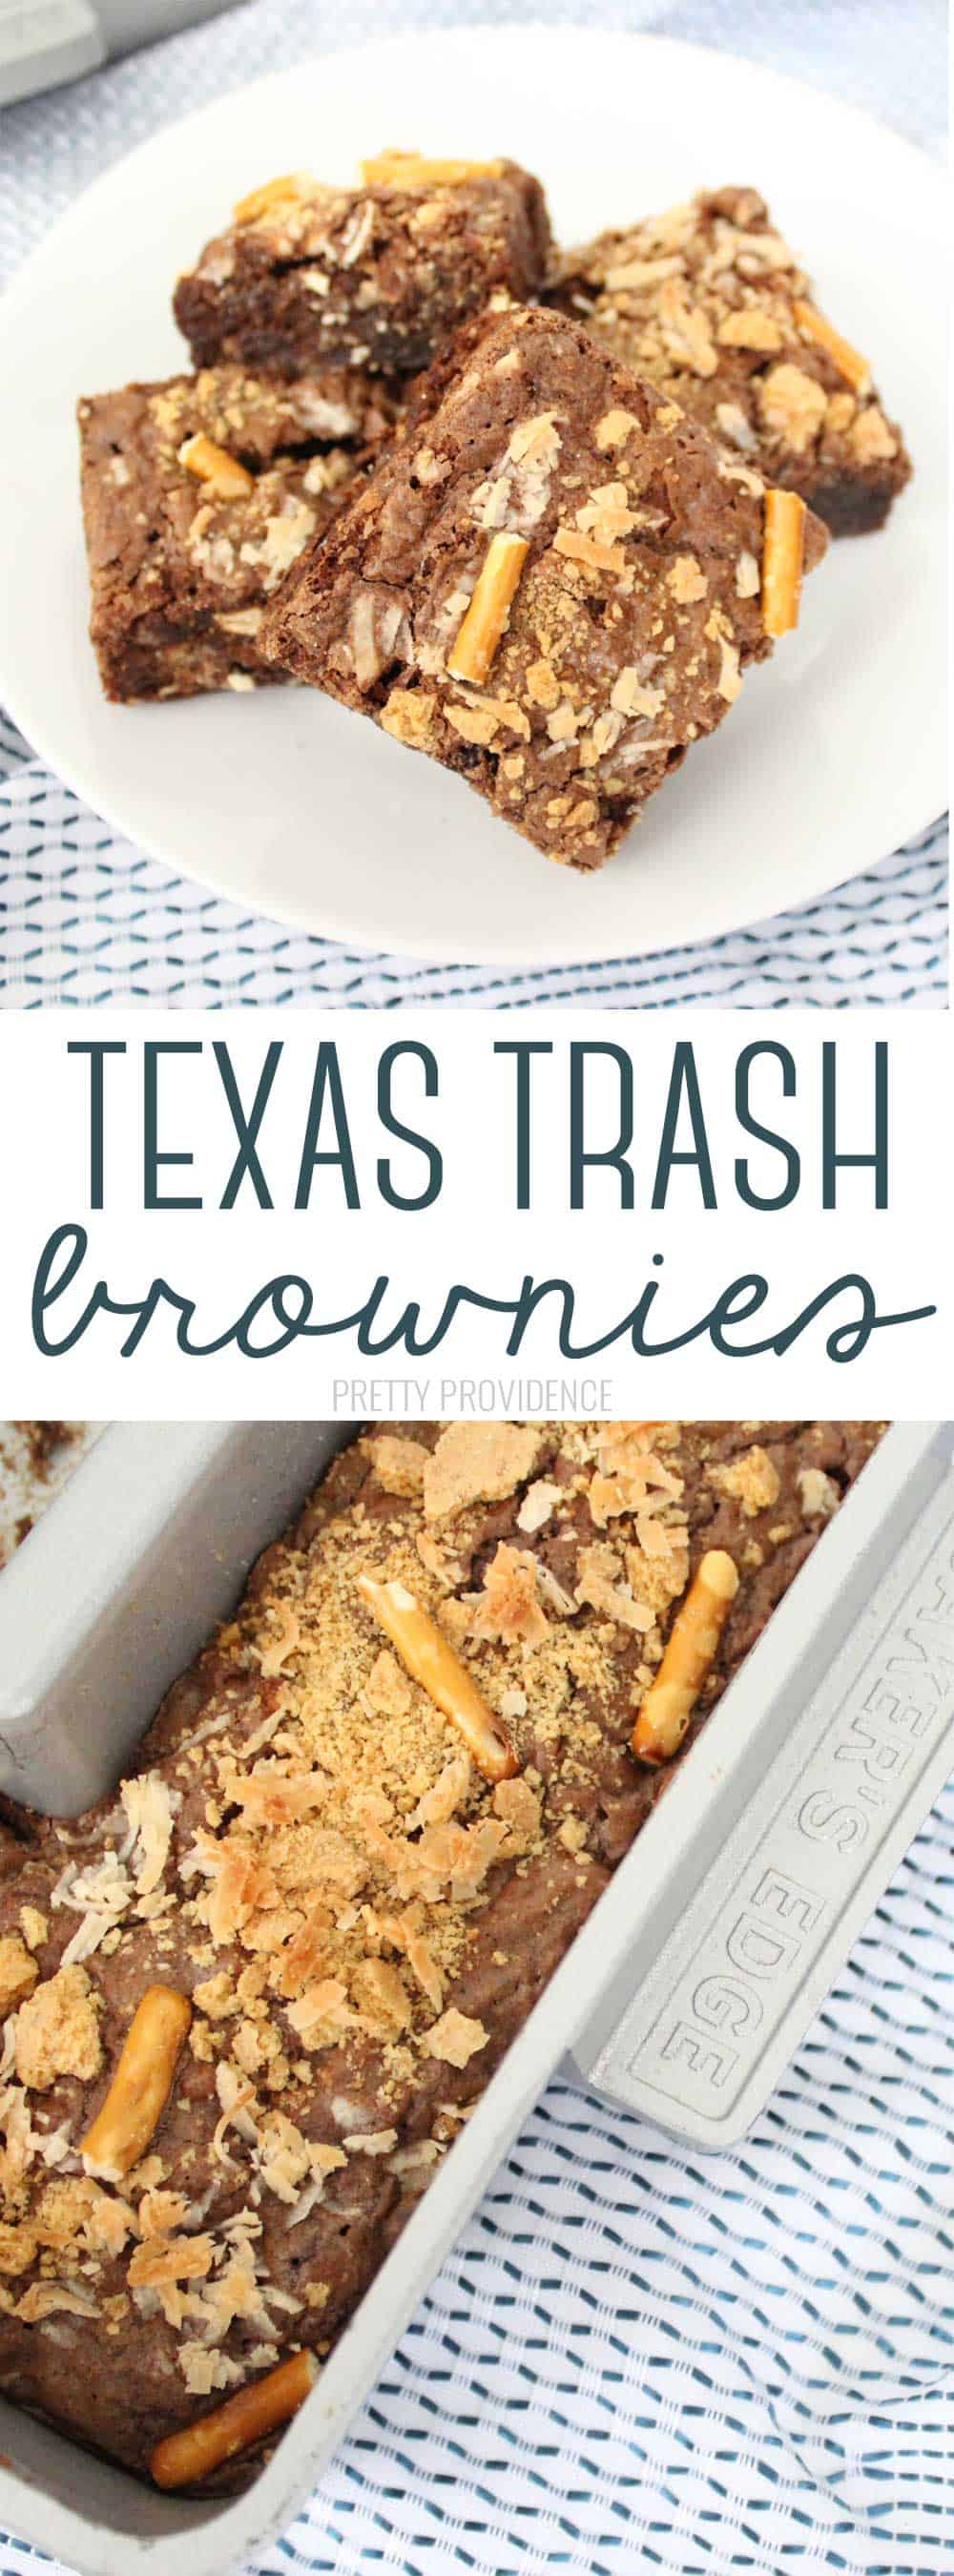 TEXAS TRASH BROWNIES - brownies with mix-ins like pretzels, coconut, and caramel are easy and so good!